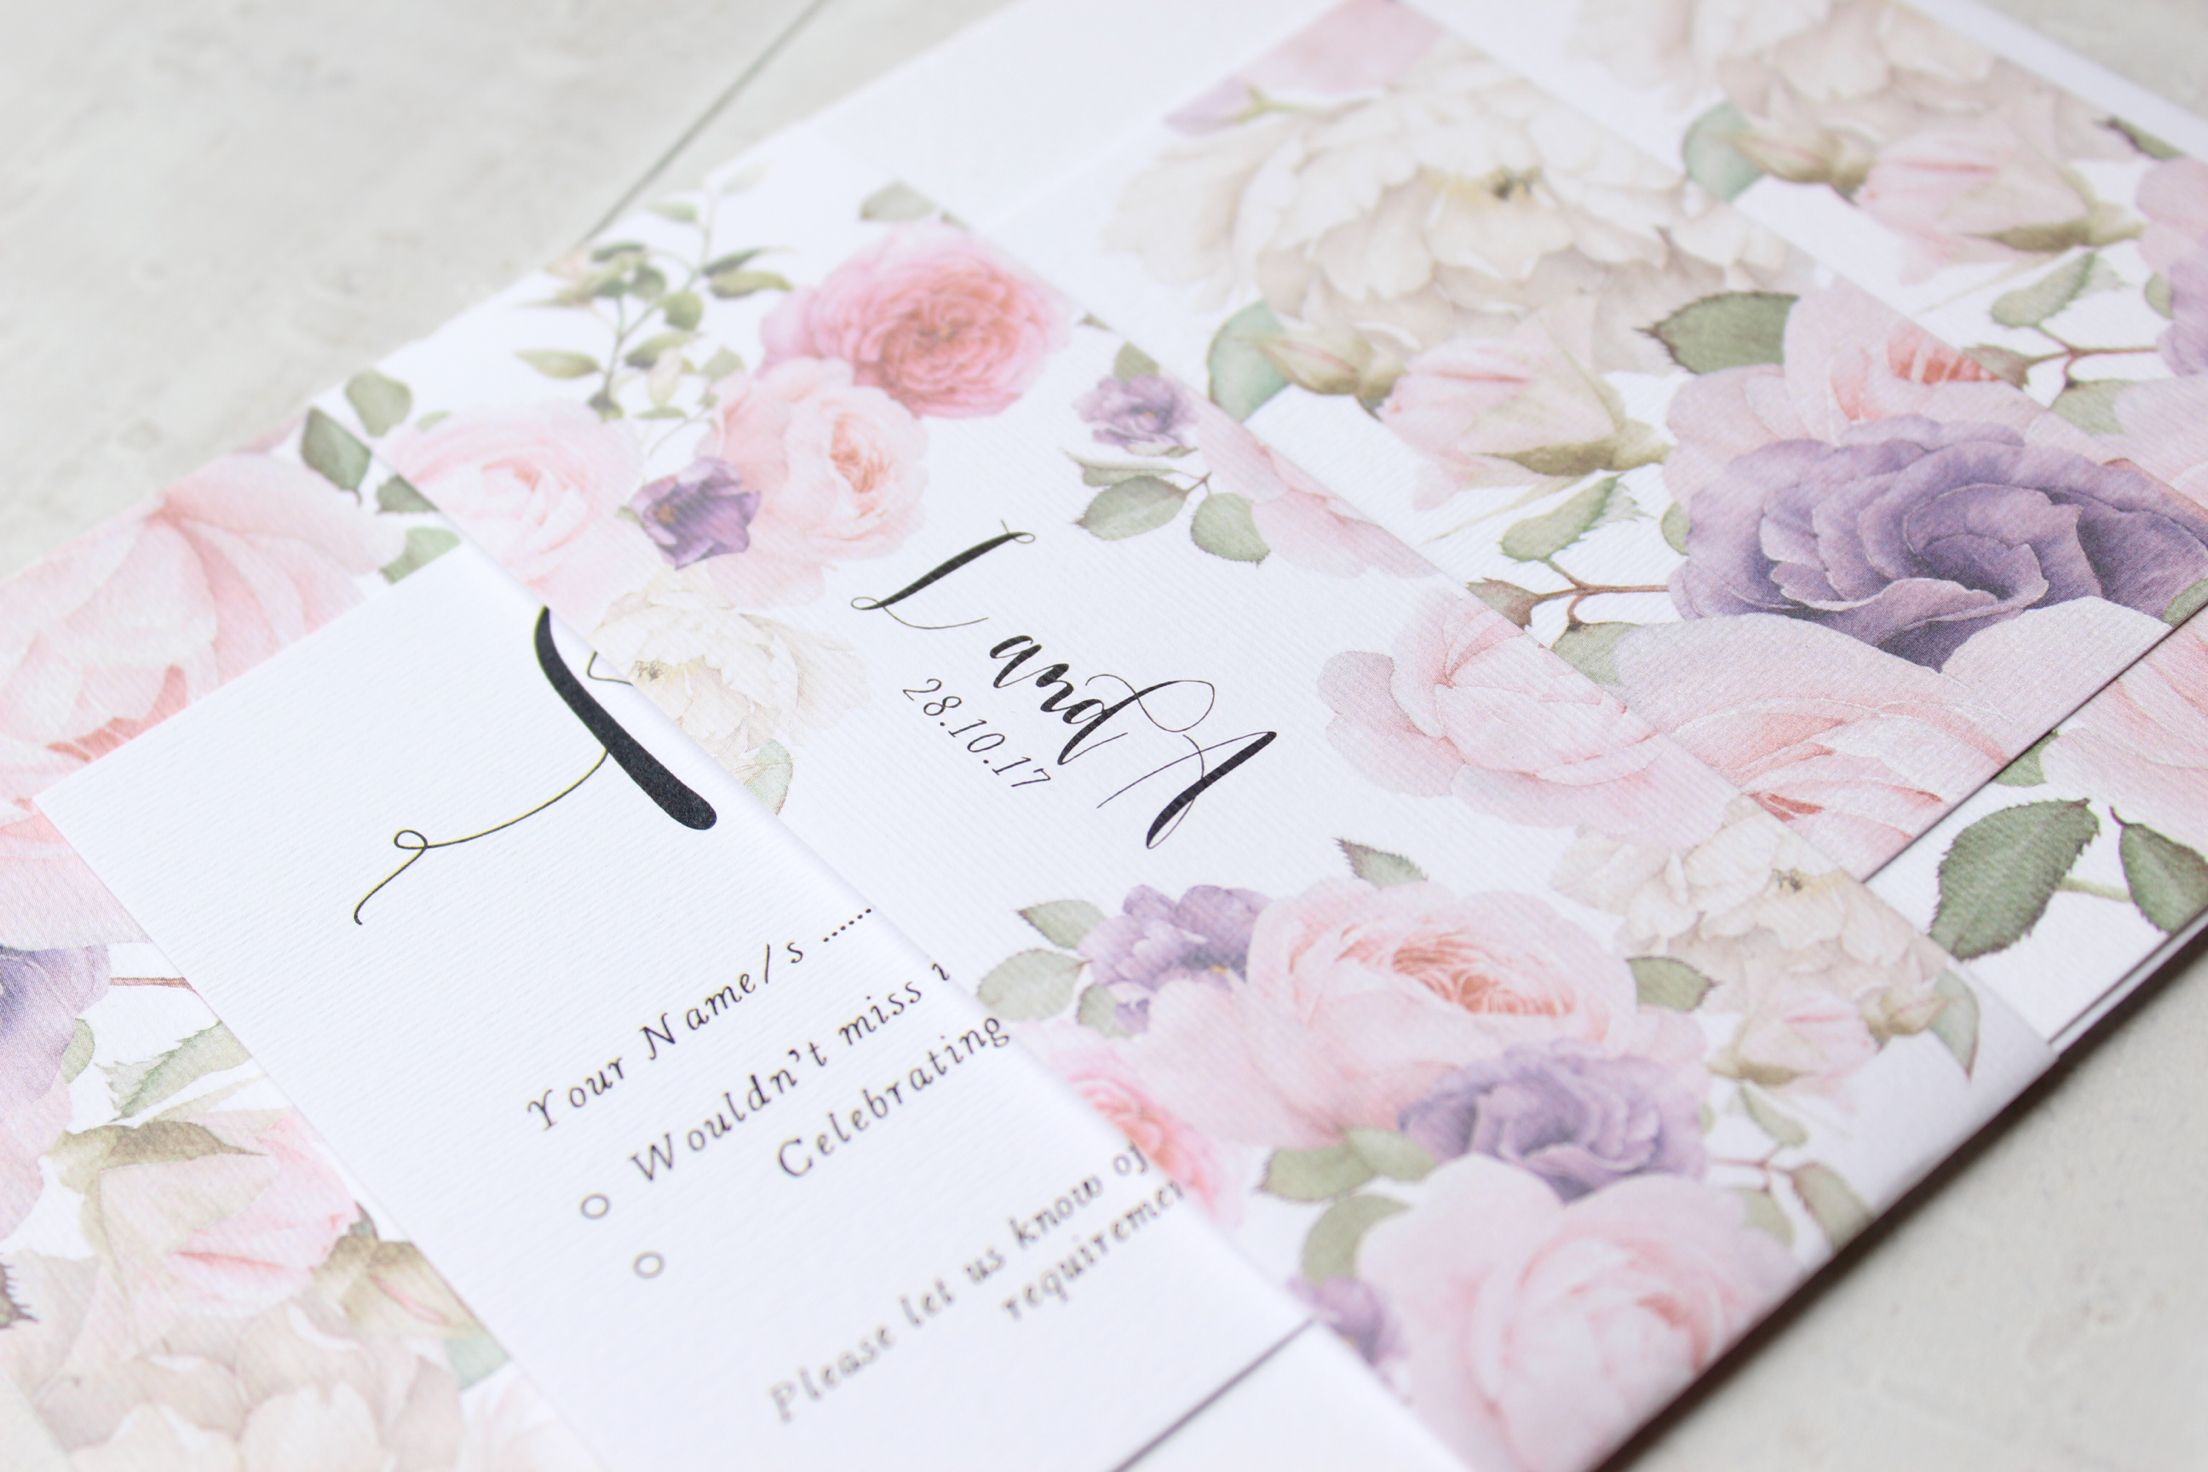 Summer Garden is a pretty floral inspired collection featuring delicate pink roses to set the tone for your big day.